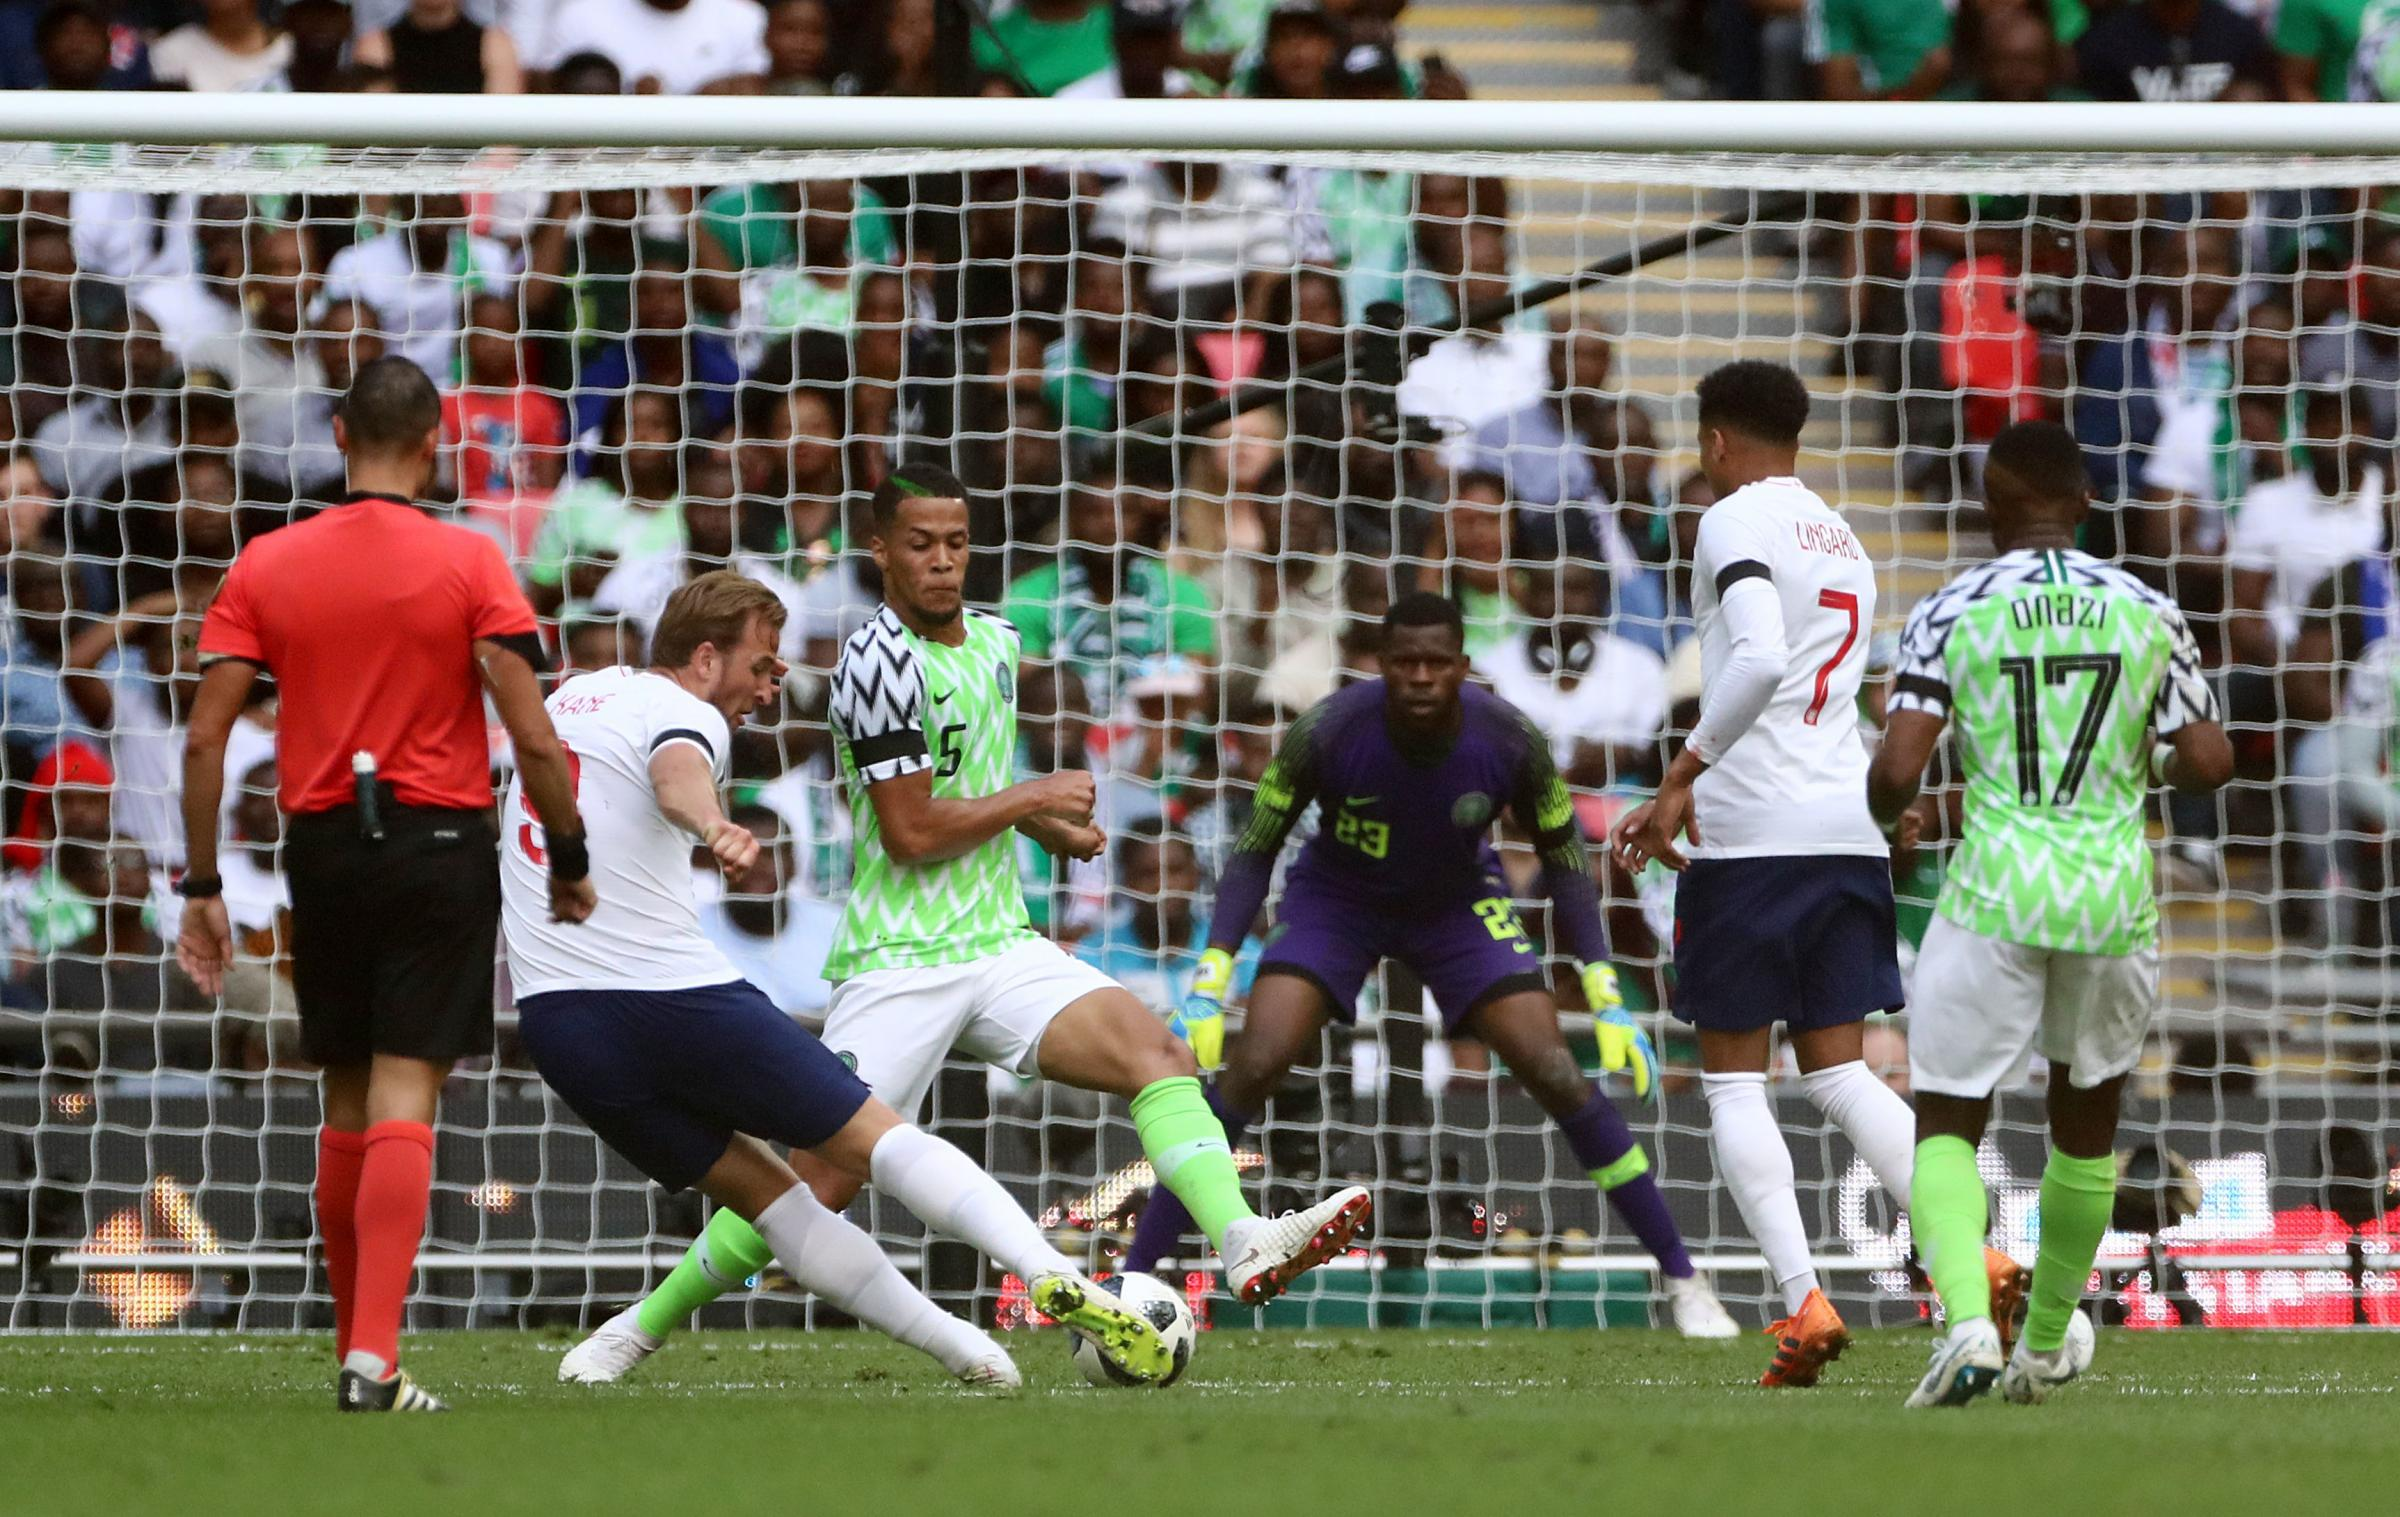 England's Harry Kane scores his side's second goal of the game against Nigeria